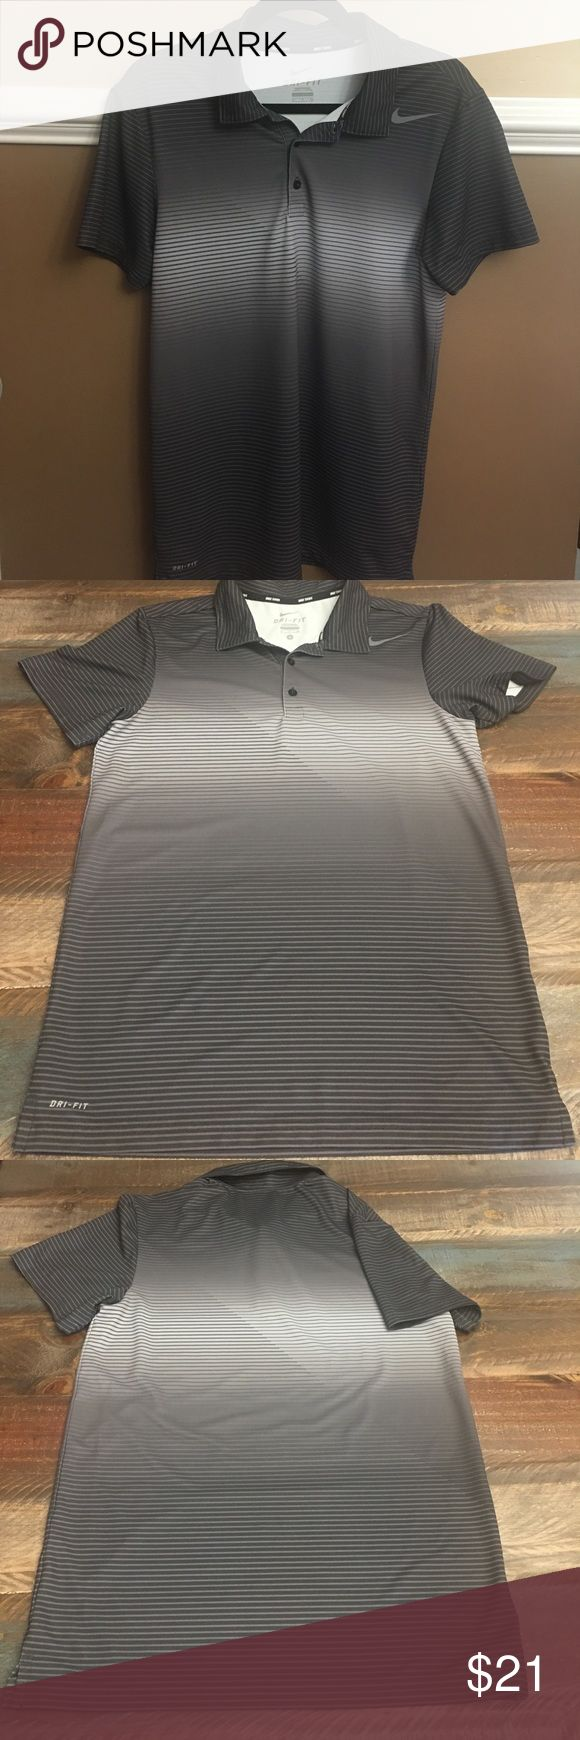 Nike Dri - Fit short sleeve shirt Like new in perfect condition , maybe worn once. Nike Men's Dri - fit short sleeve collard shirt. Super nice & soft in shades of grey Nike Shirts